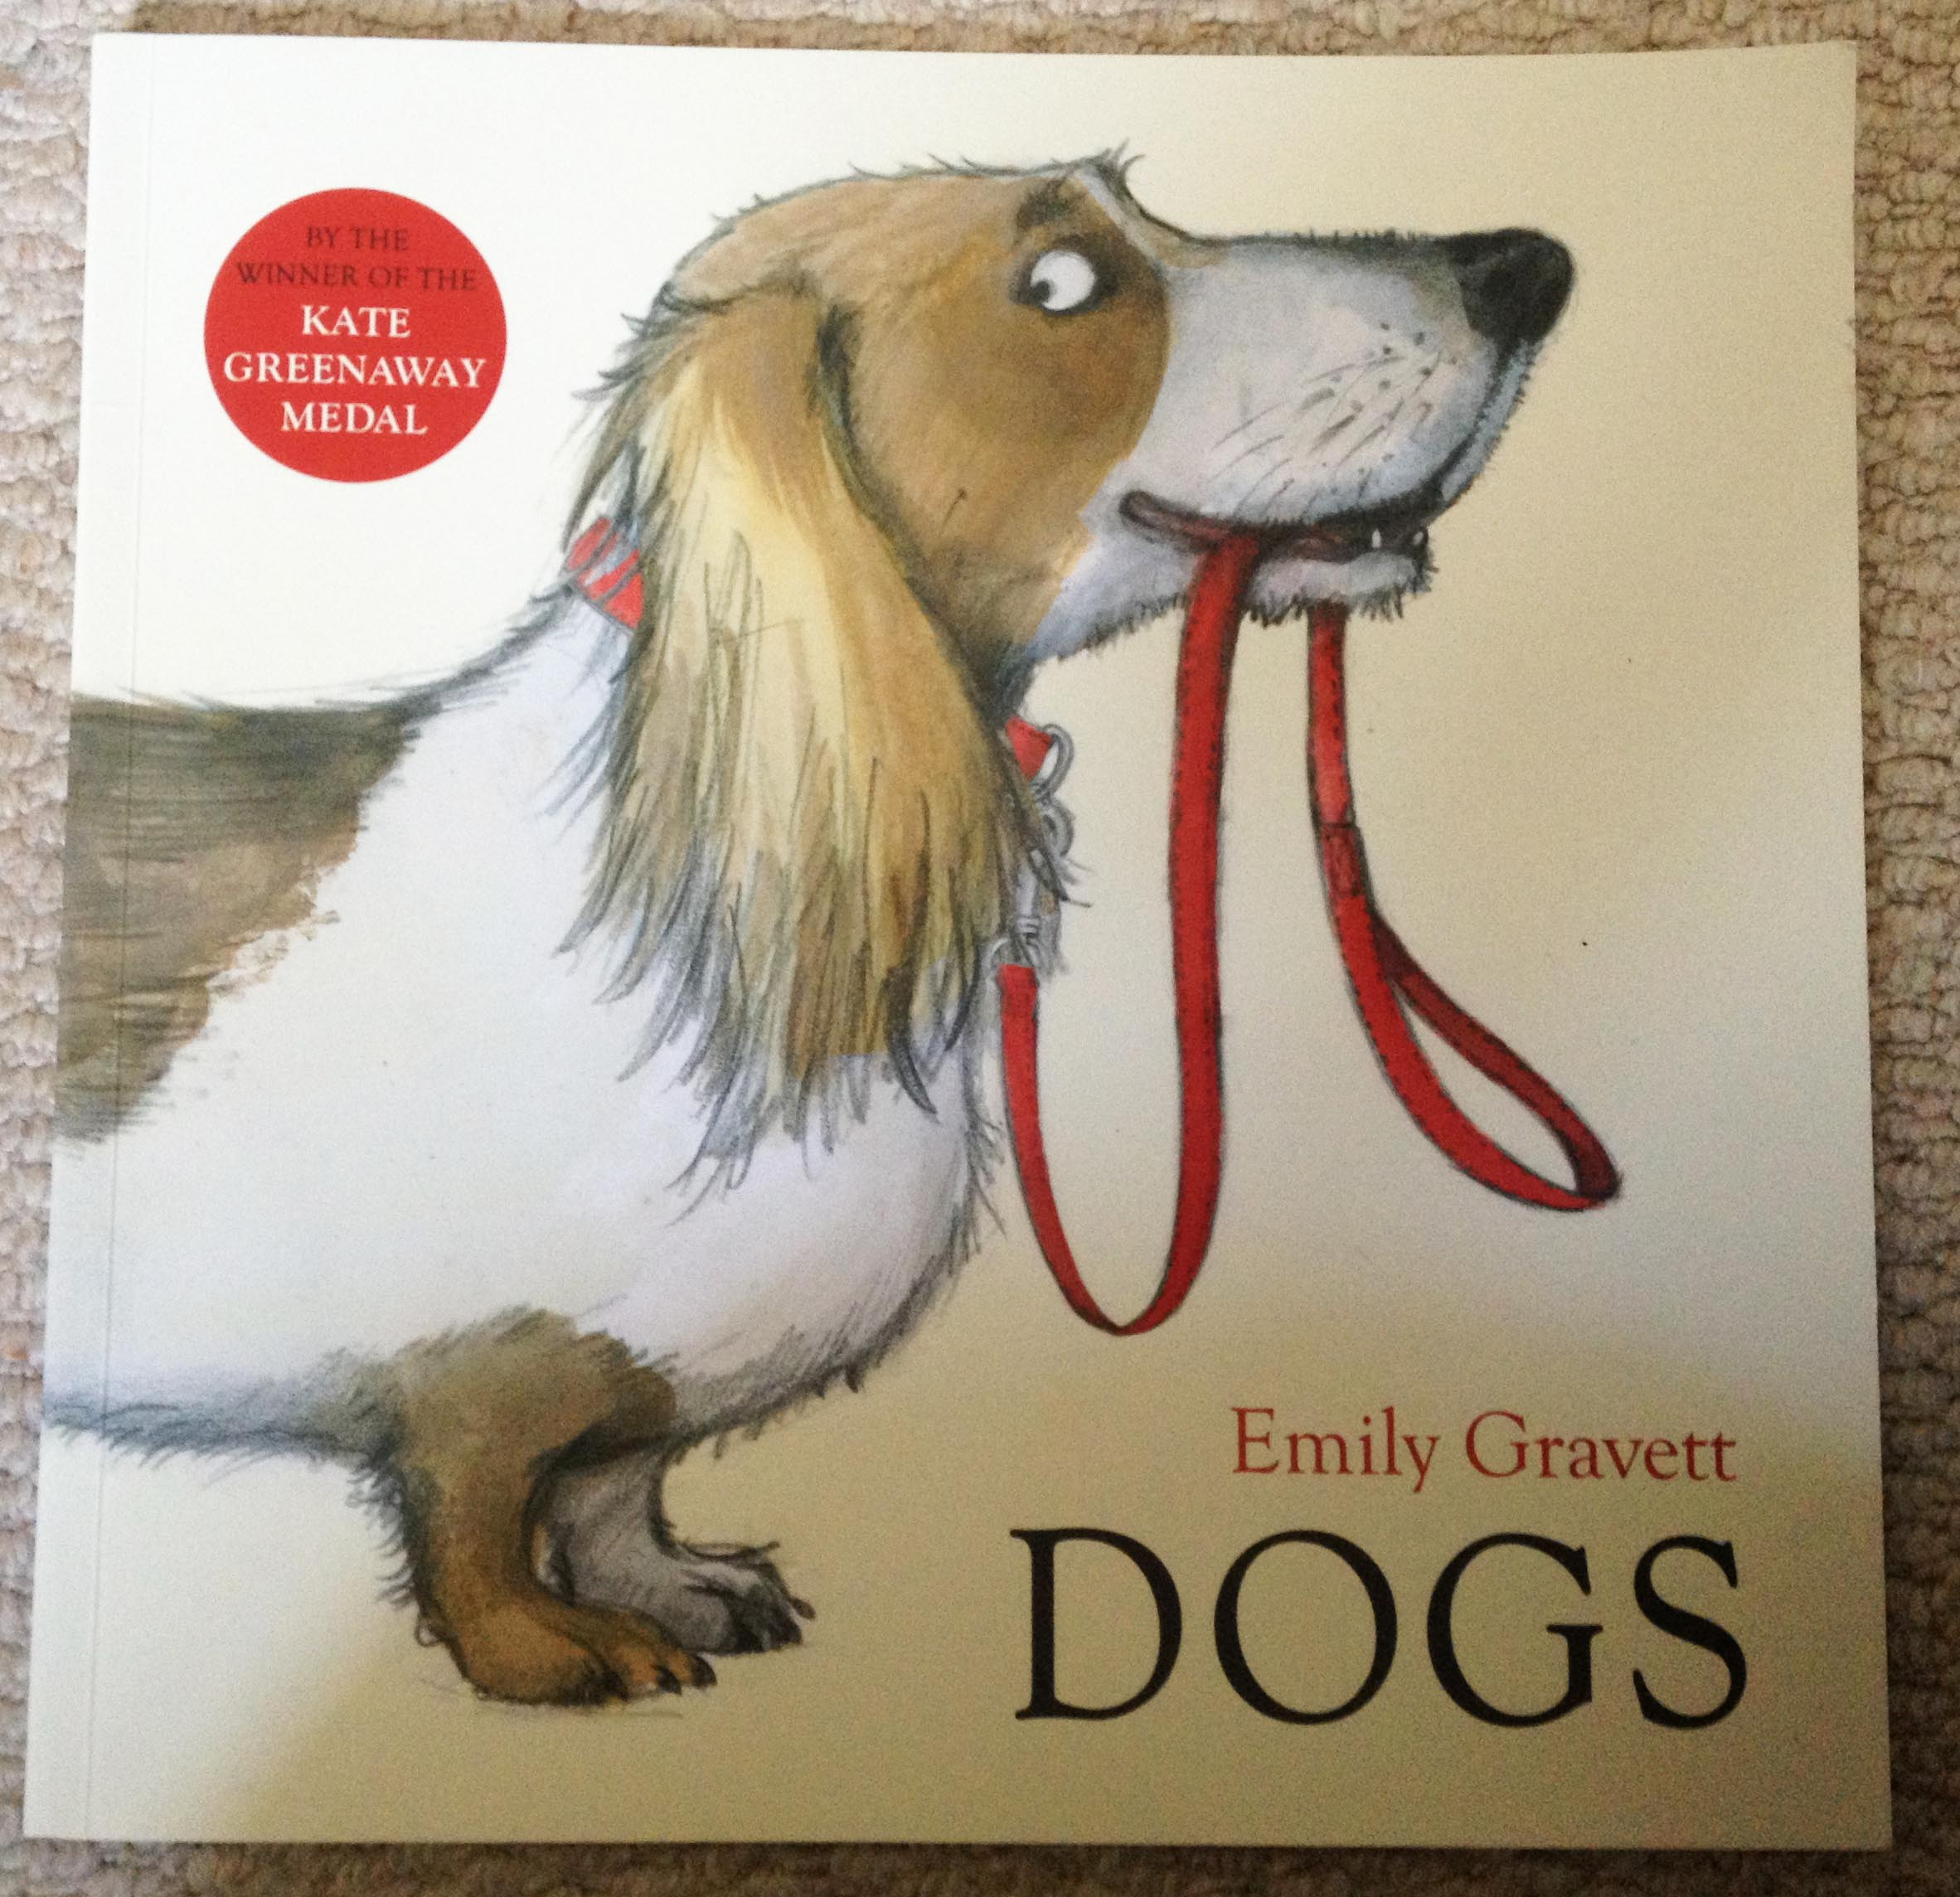 'Dogs' by Emily Gravett